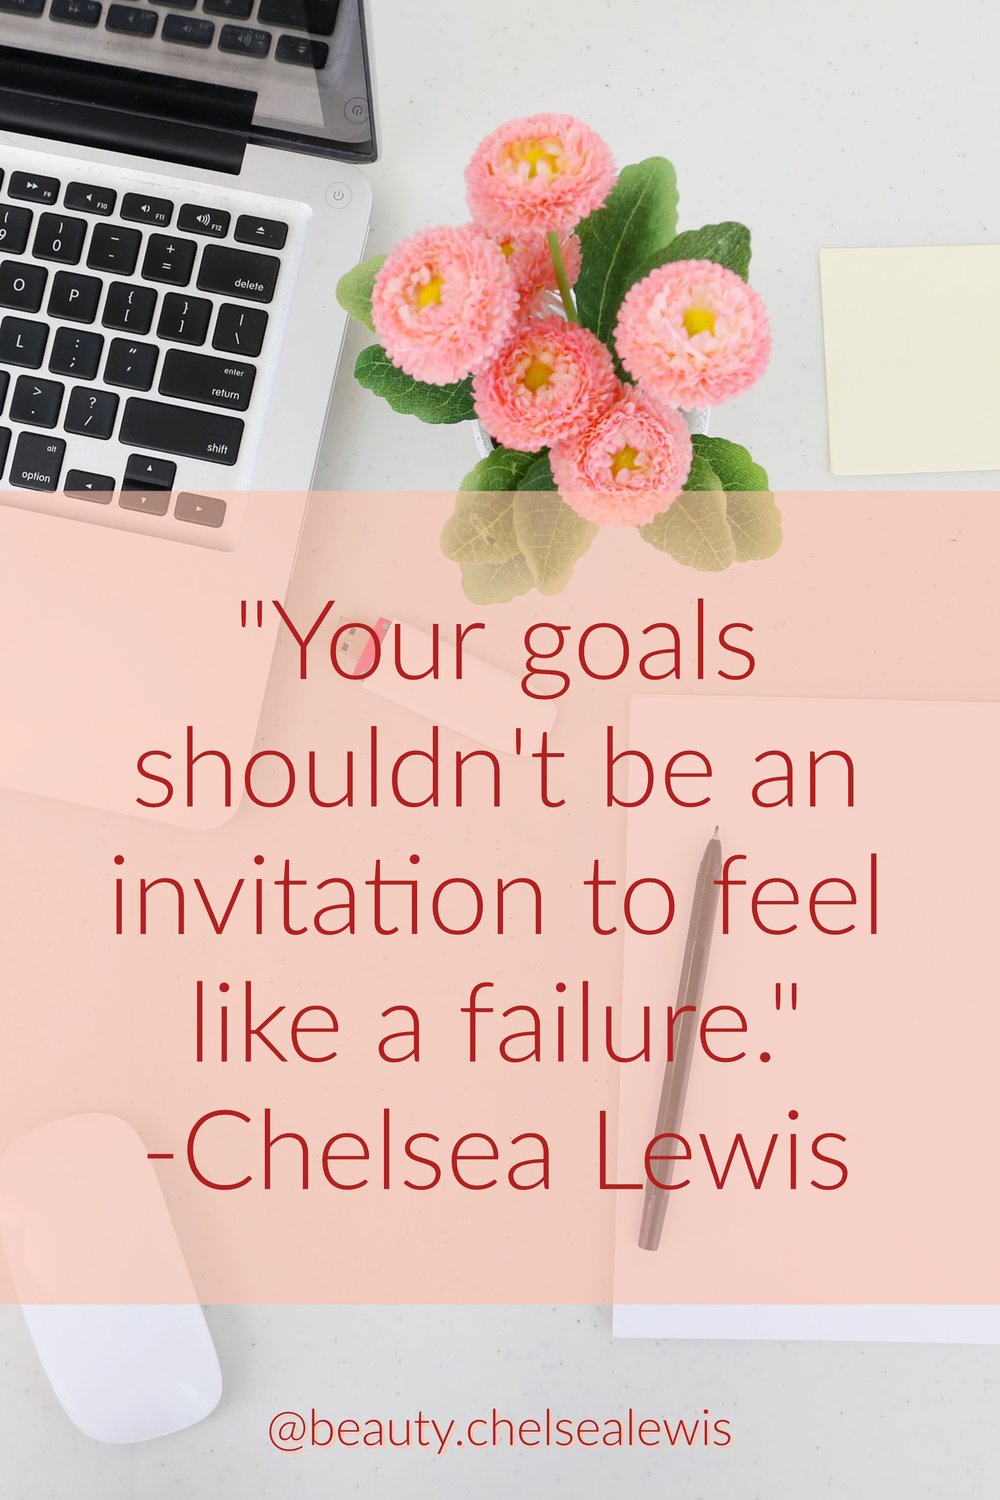 Your goals shouldn't be an invitation to feel like a failure.